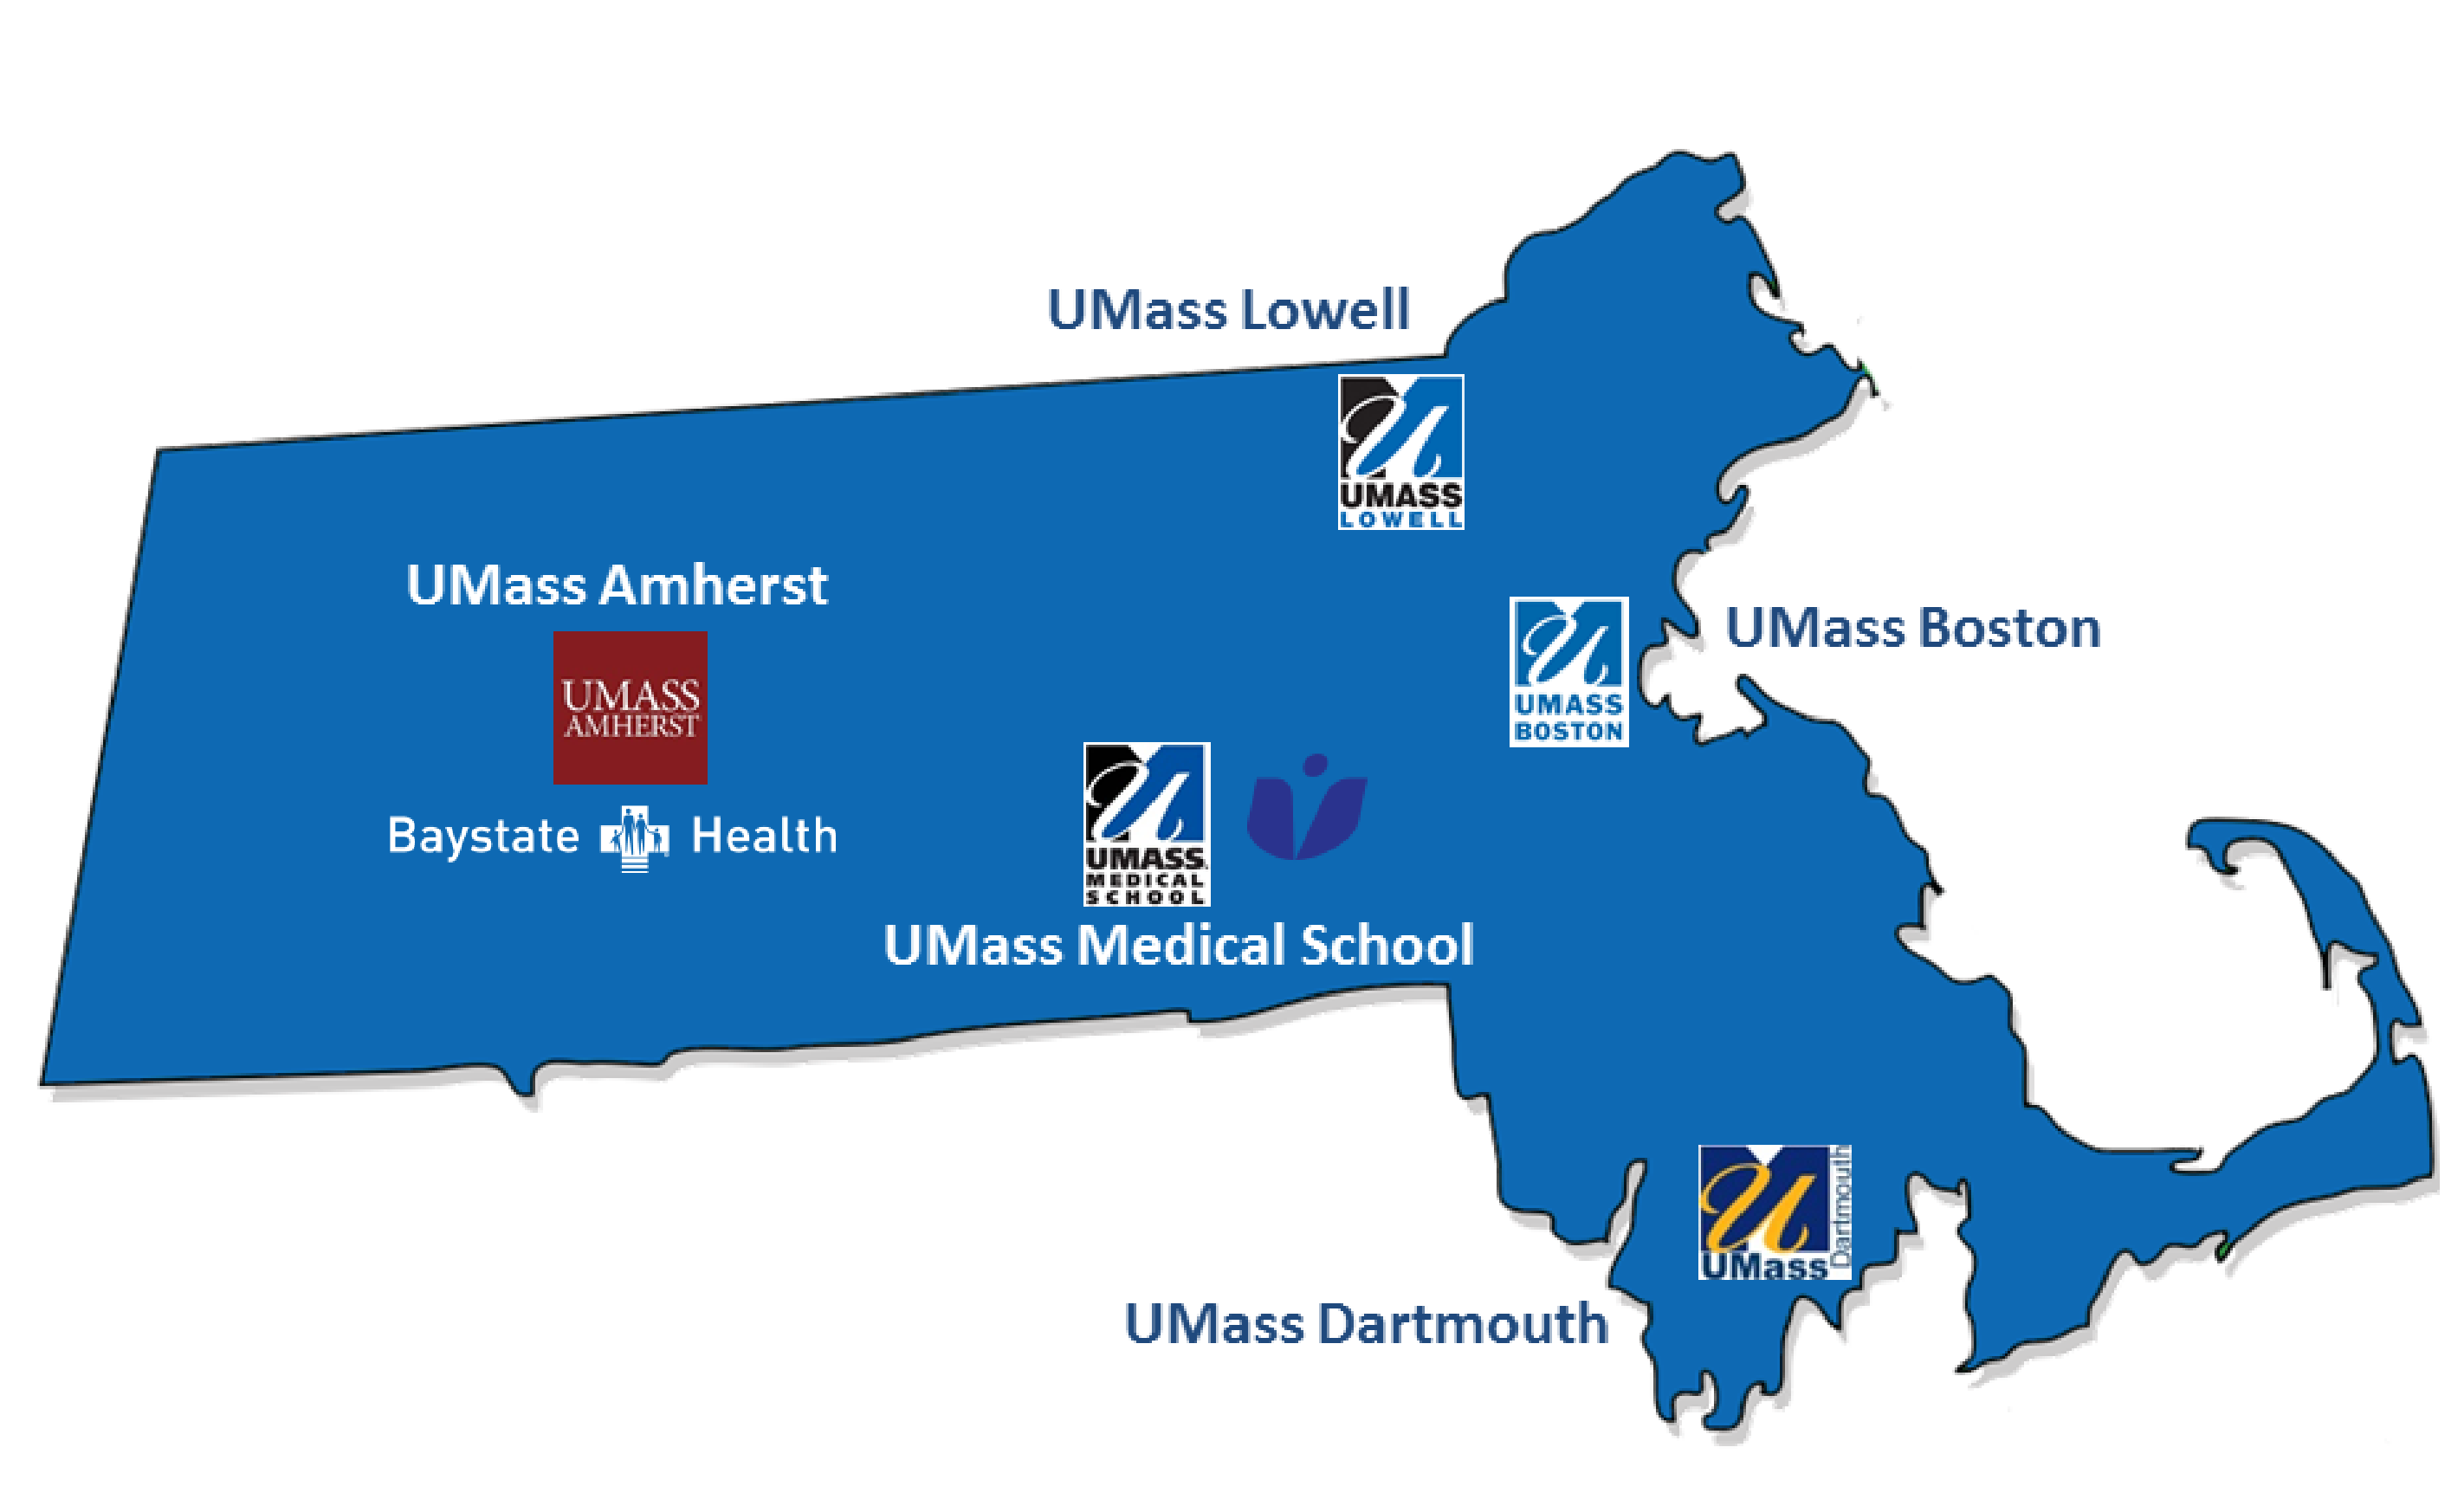 About The UMass Center for Clinical and Translational Science (UMCCTS)